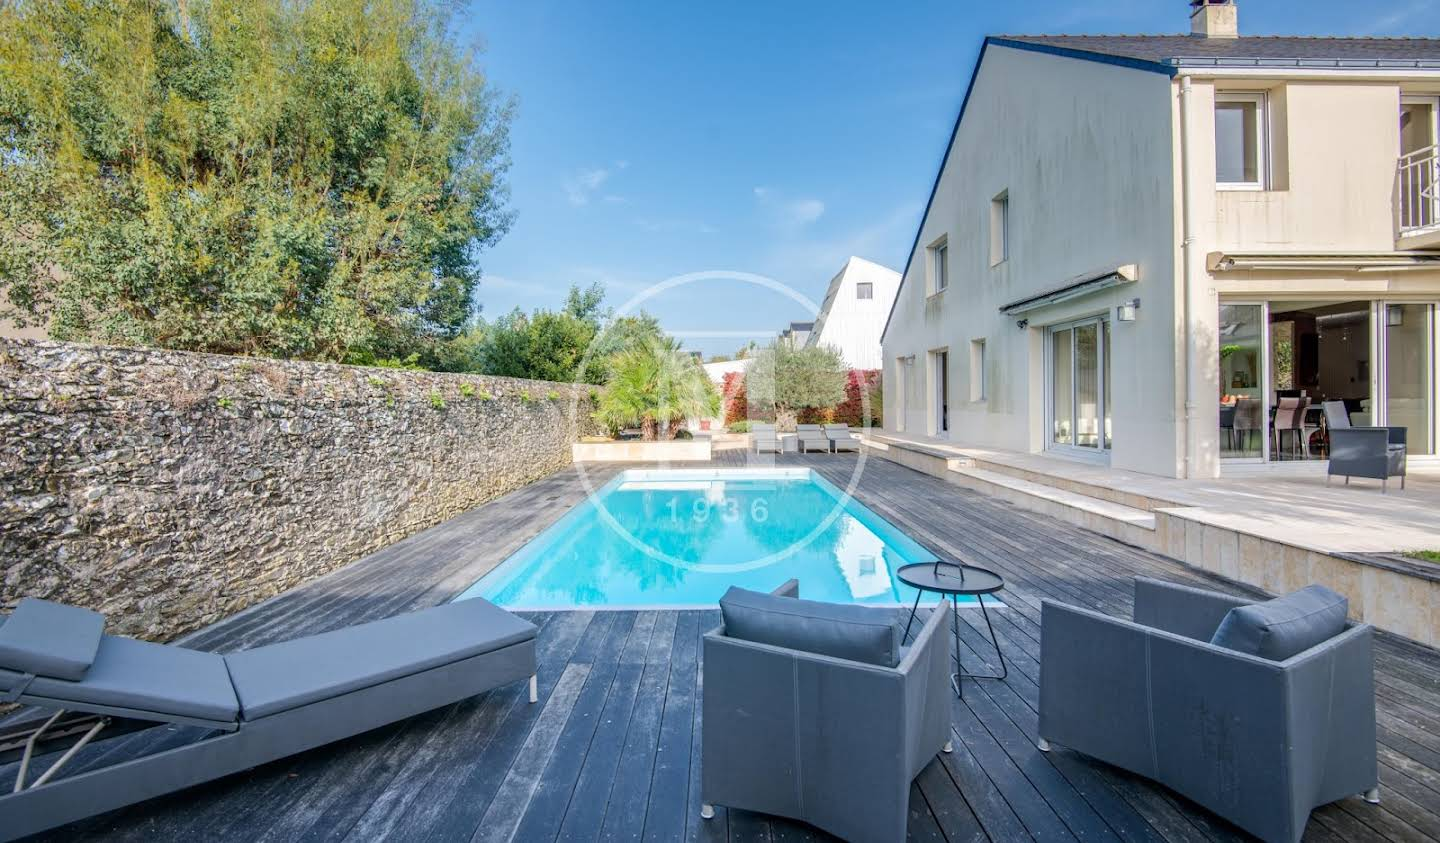 House with pool and terrace Nantes